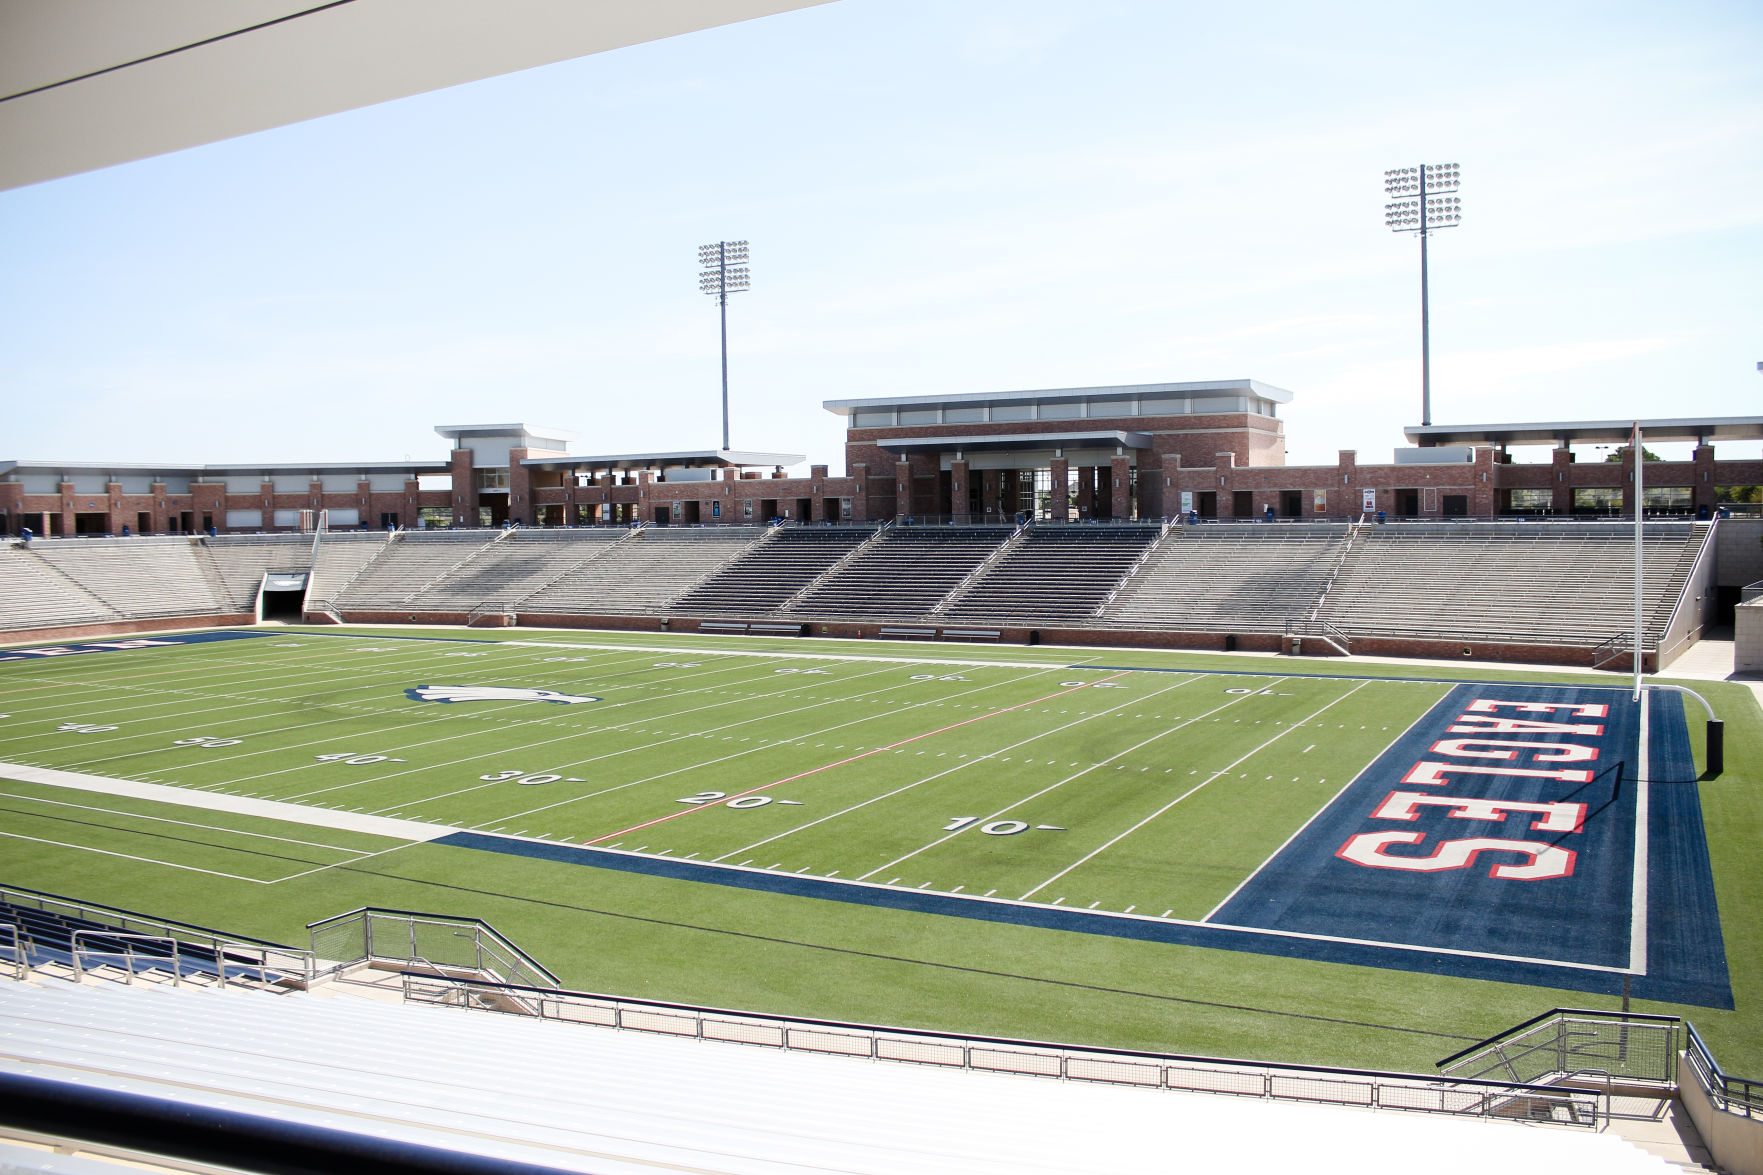 6c15a0ba16e Kyler Murray's high school football field at Allen High School in Allen,  TX. Caitlyn Epes/The Daily